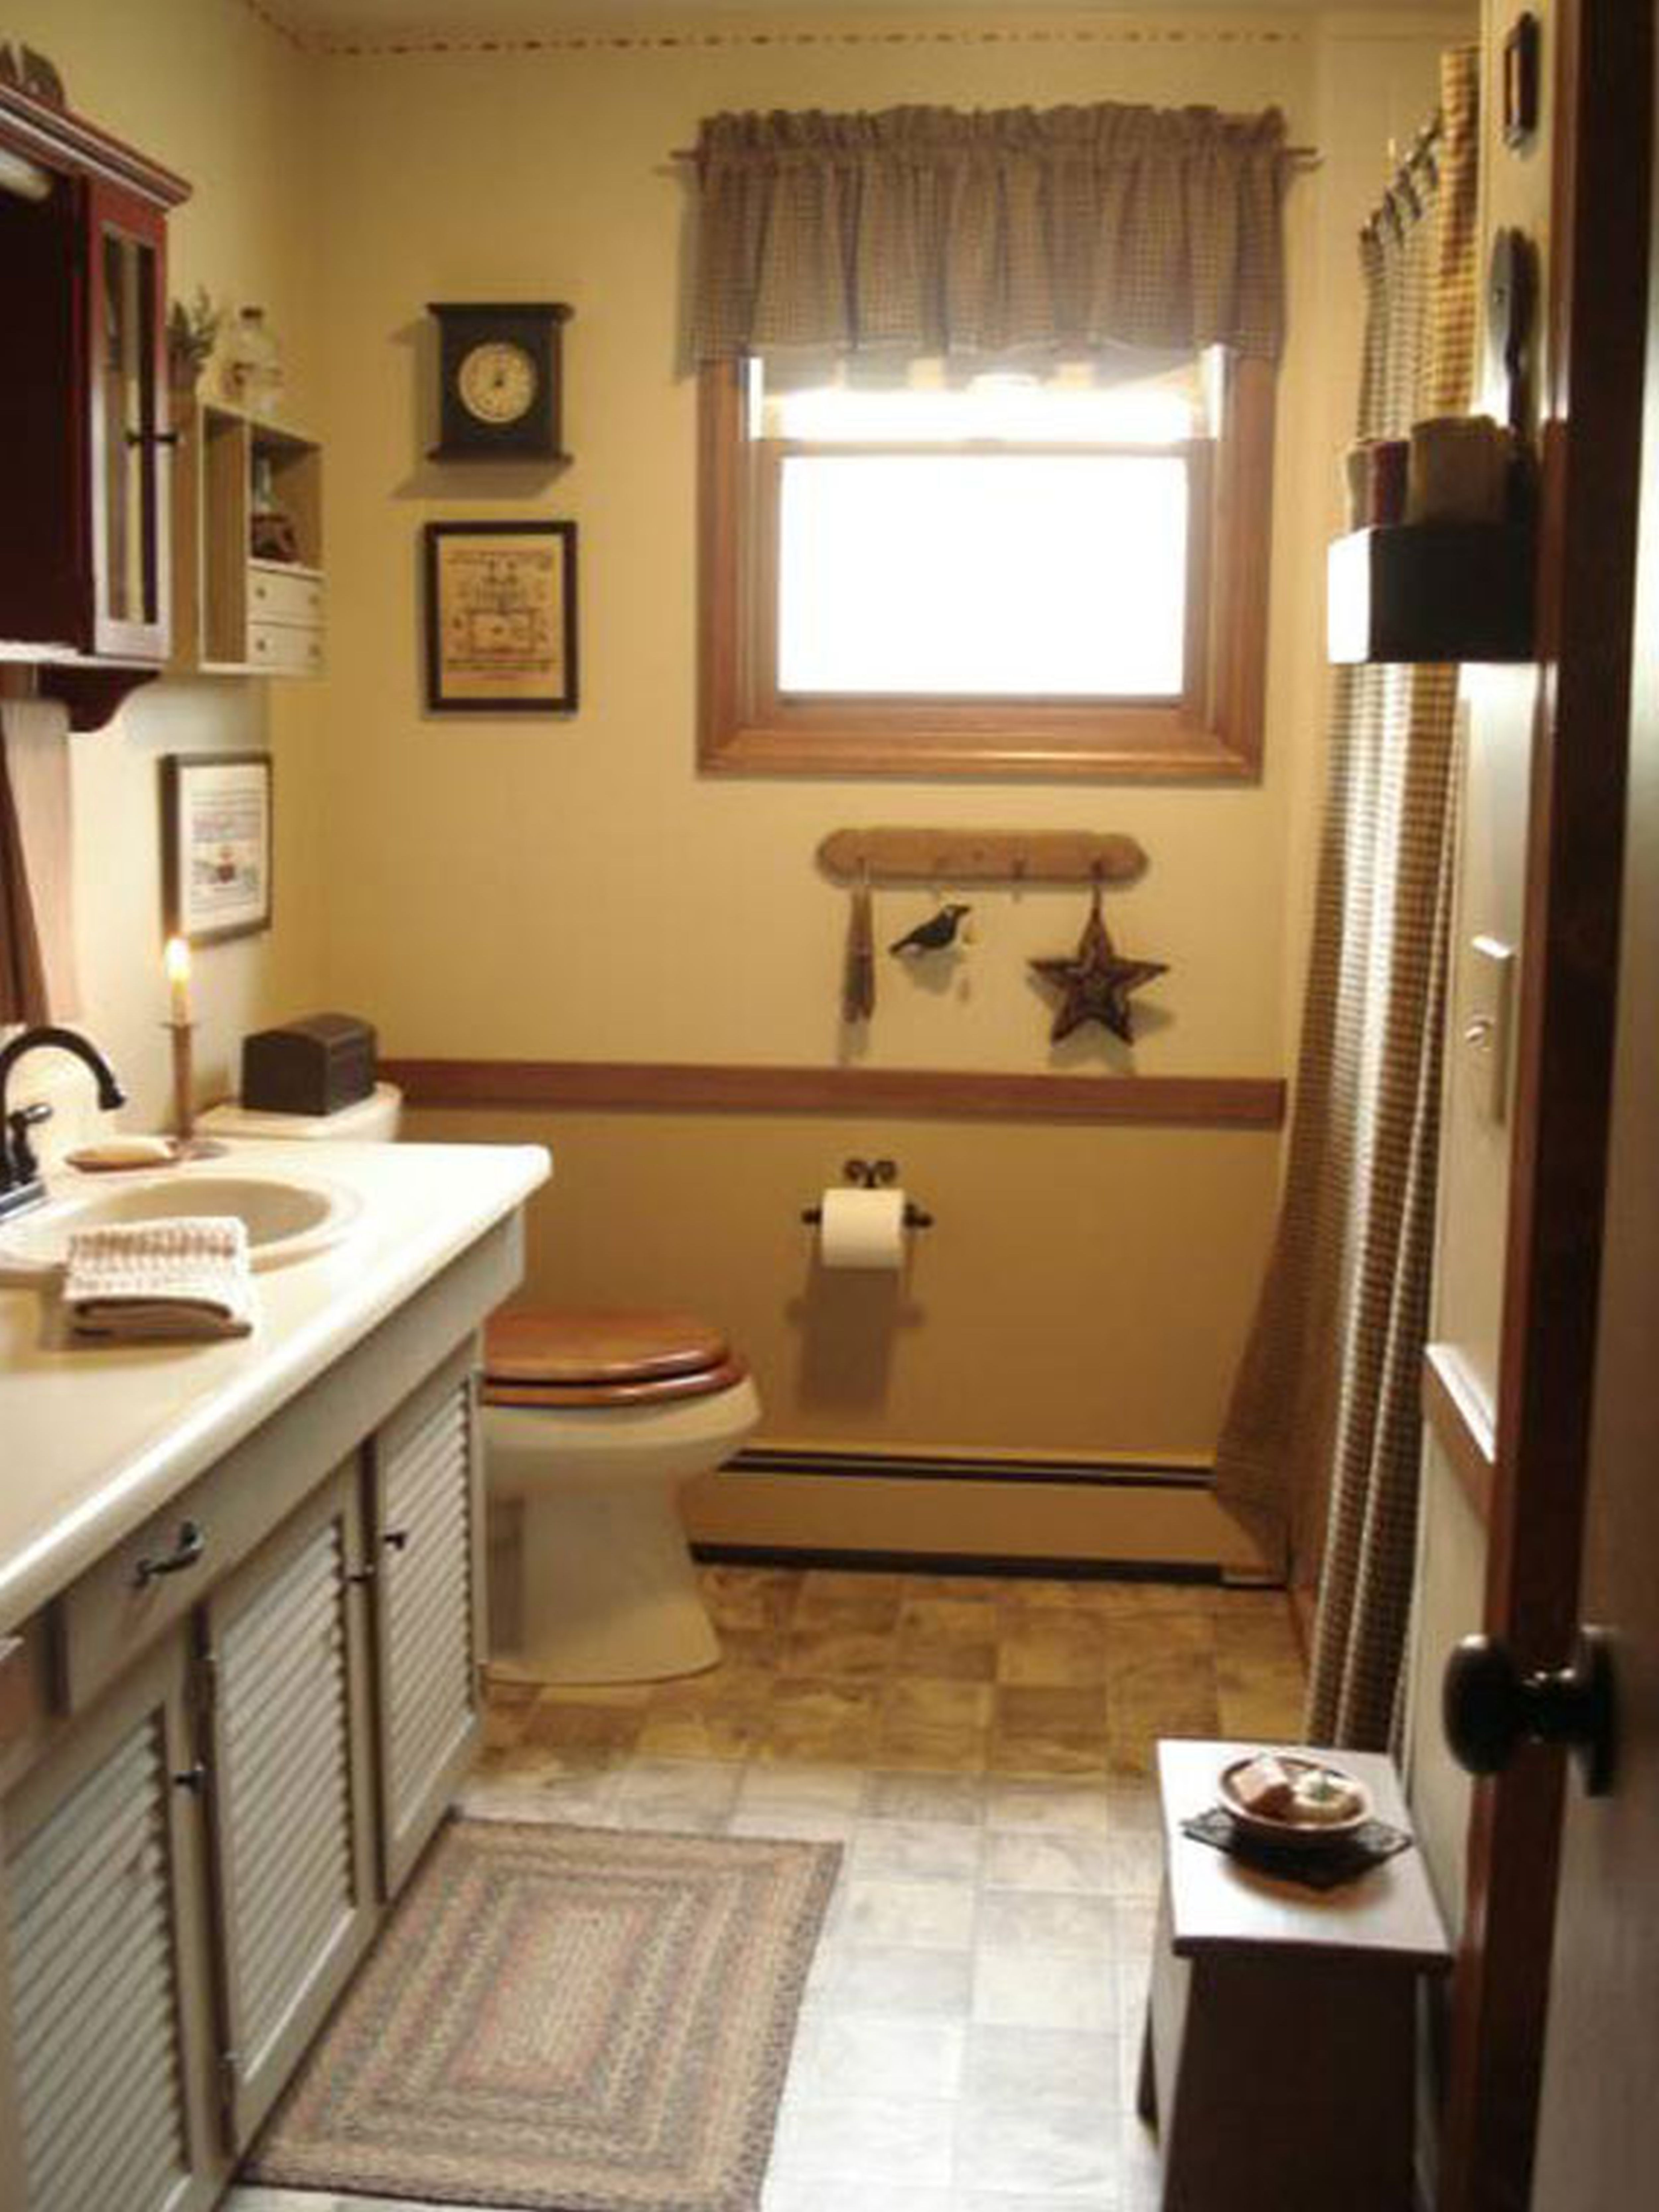 Cheap Western Bathroom Decor Inspirational Interior Design Tips for Any Home and Any Bud